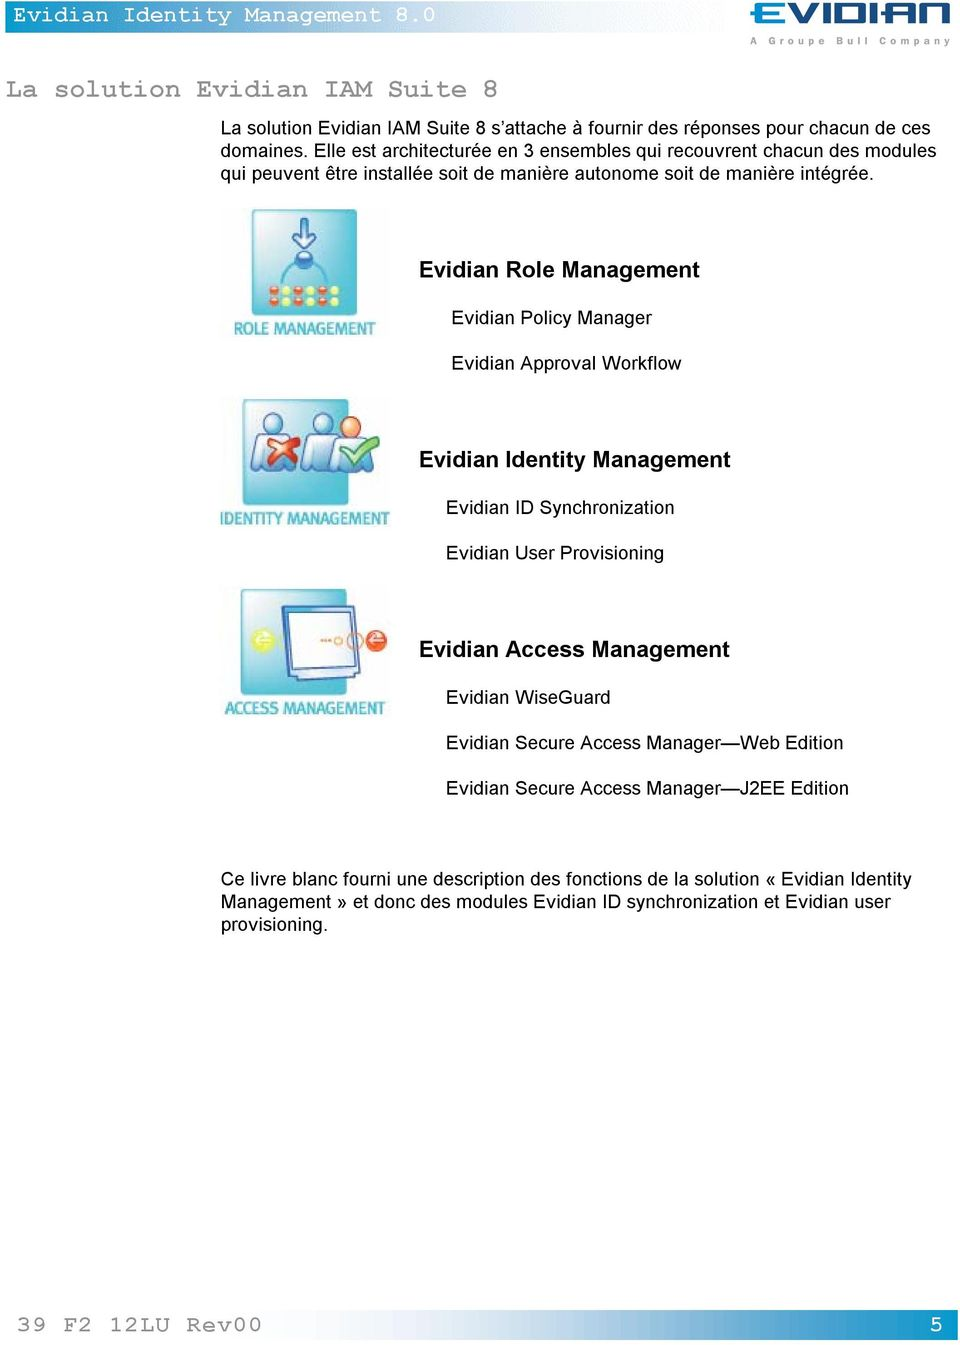 Evidian Role Management Evidian Policy Manager Evidian Approval Workflow Evidian Identity Management Evidian ID Synchronization Evidian User Provisioning Evidian Access Management Evidian